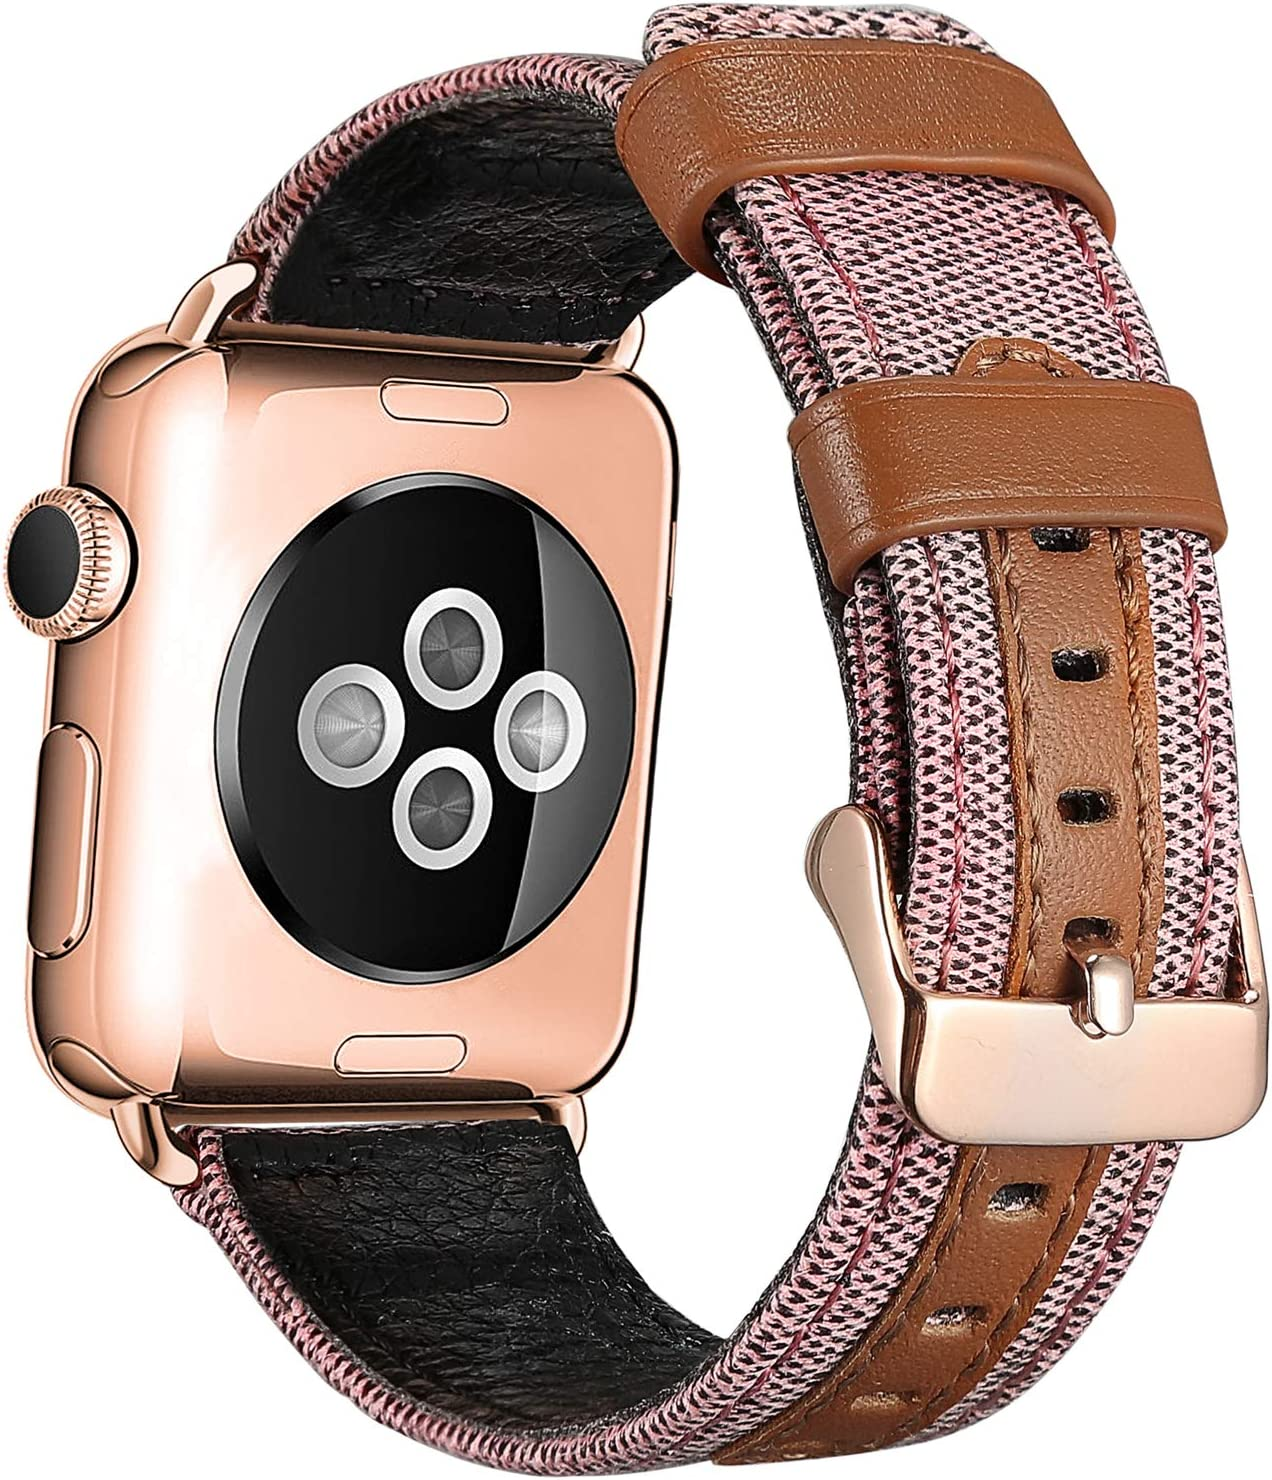 SKYLET Compatible with Apple Watch Bands 44mm 42mm 40mm 38mm Leather Bands, Canvas Fabric Soft Wristbands Compatible with Apple Watch Series 6/5/4/3/2/1/se Men Women Pink